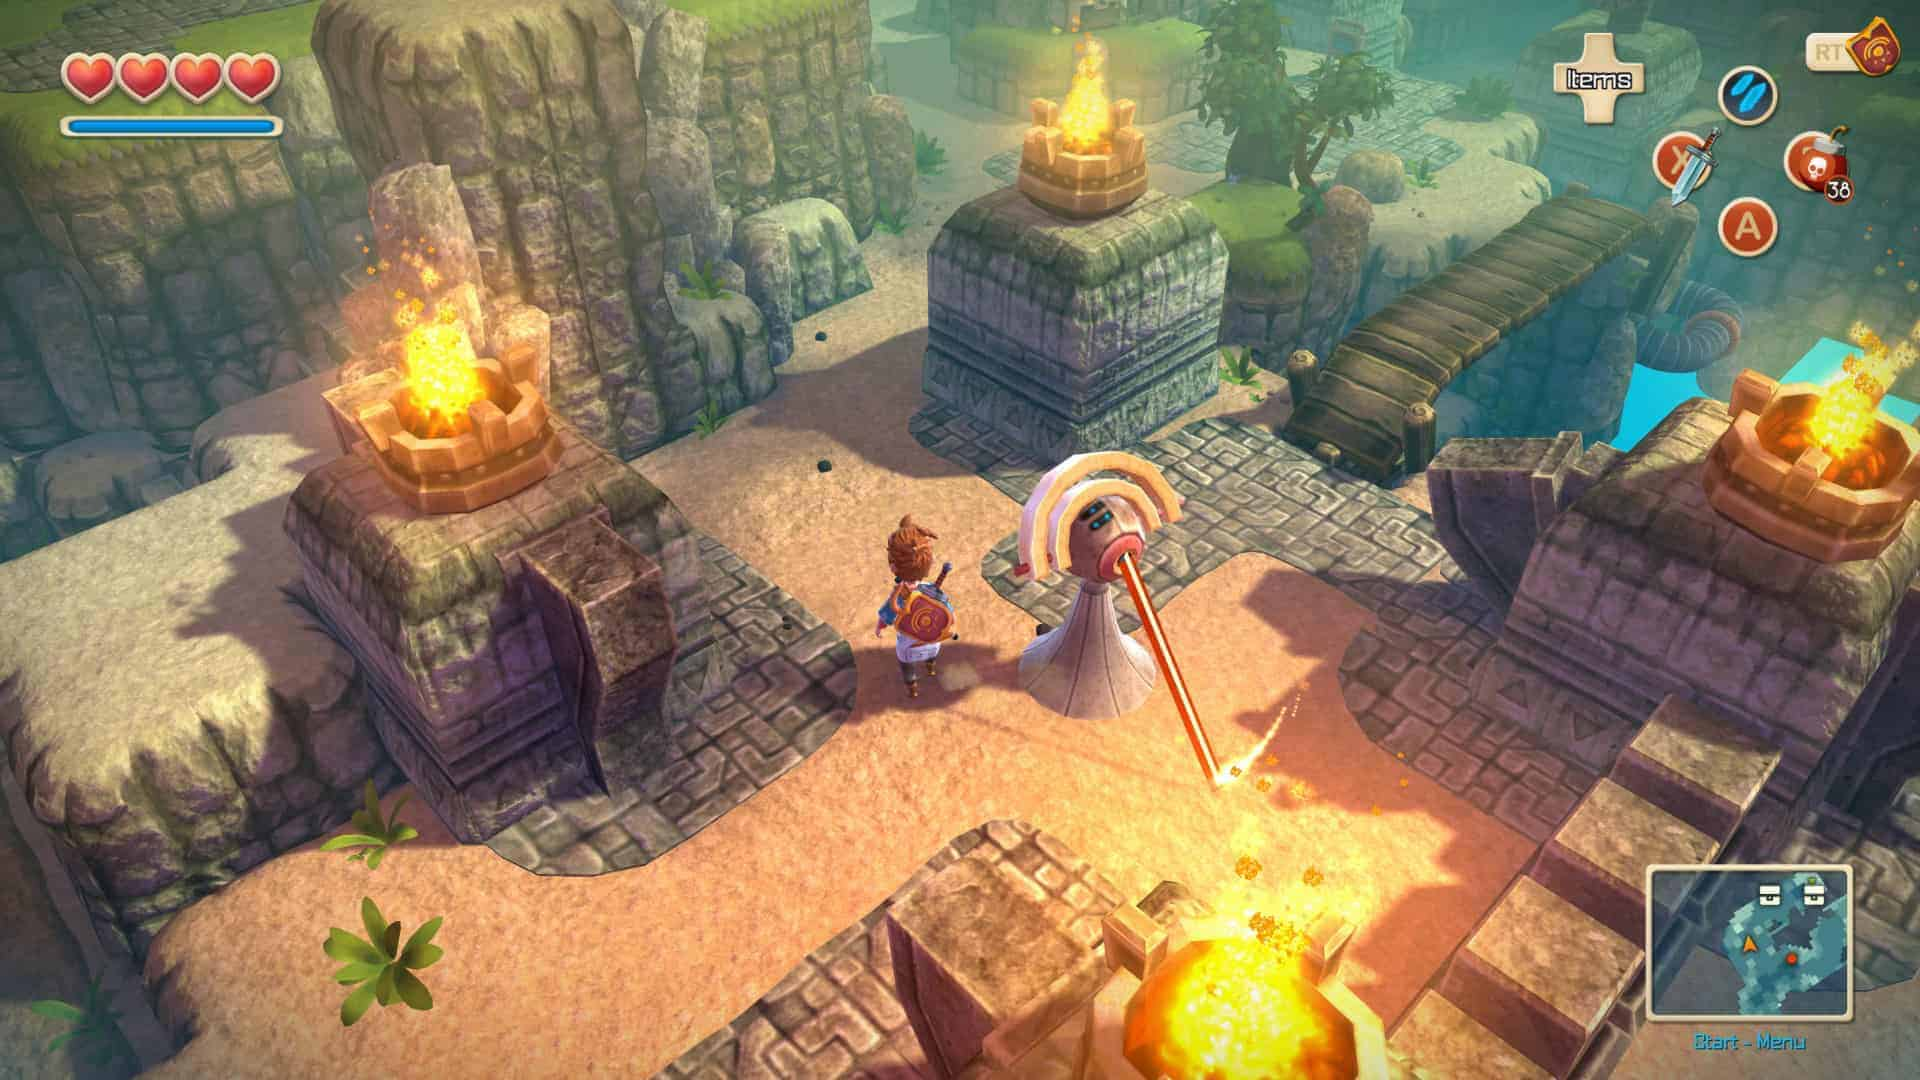 oceanhorn monster of uncharted seas best switch rpgs